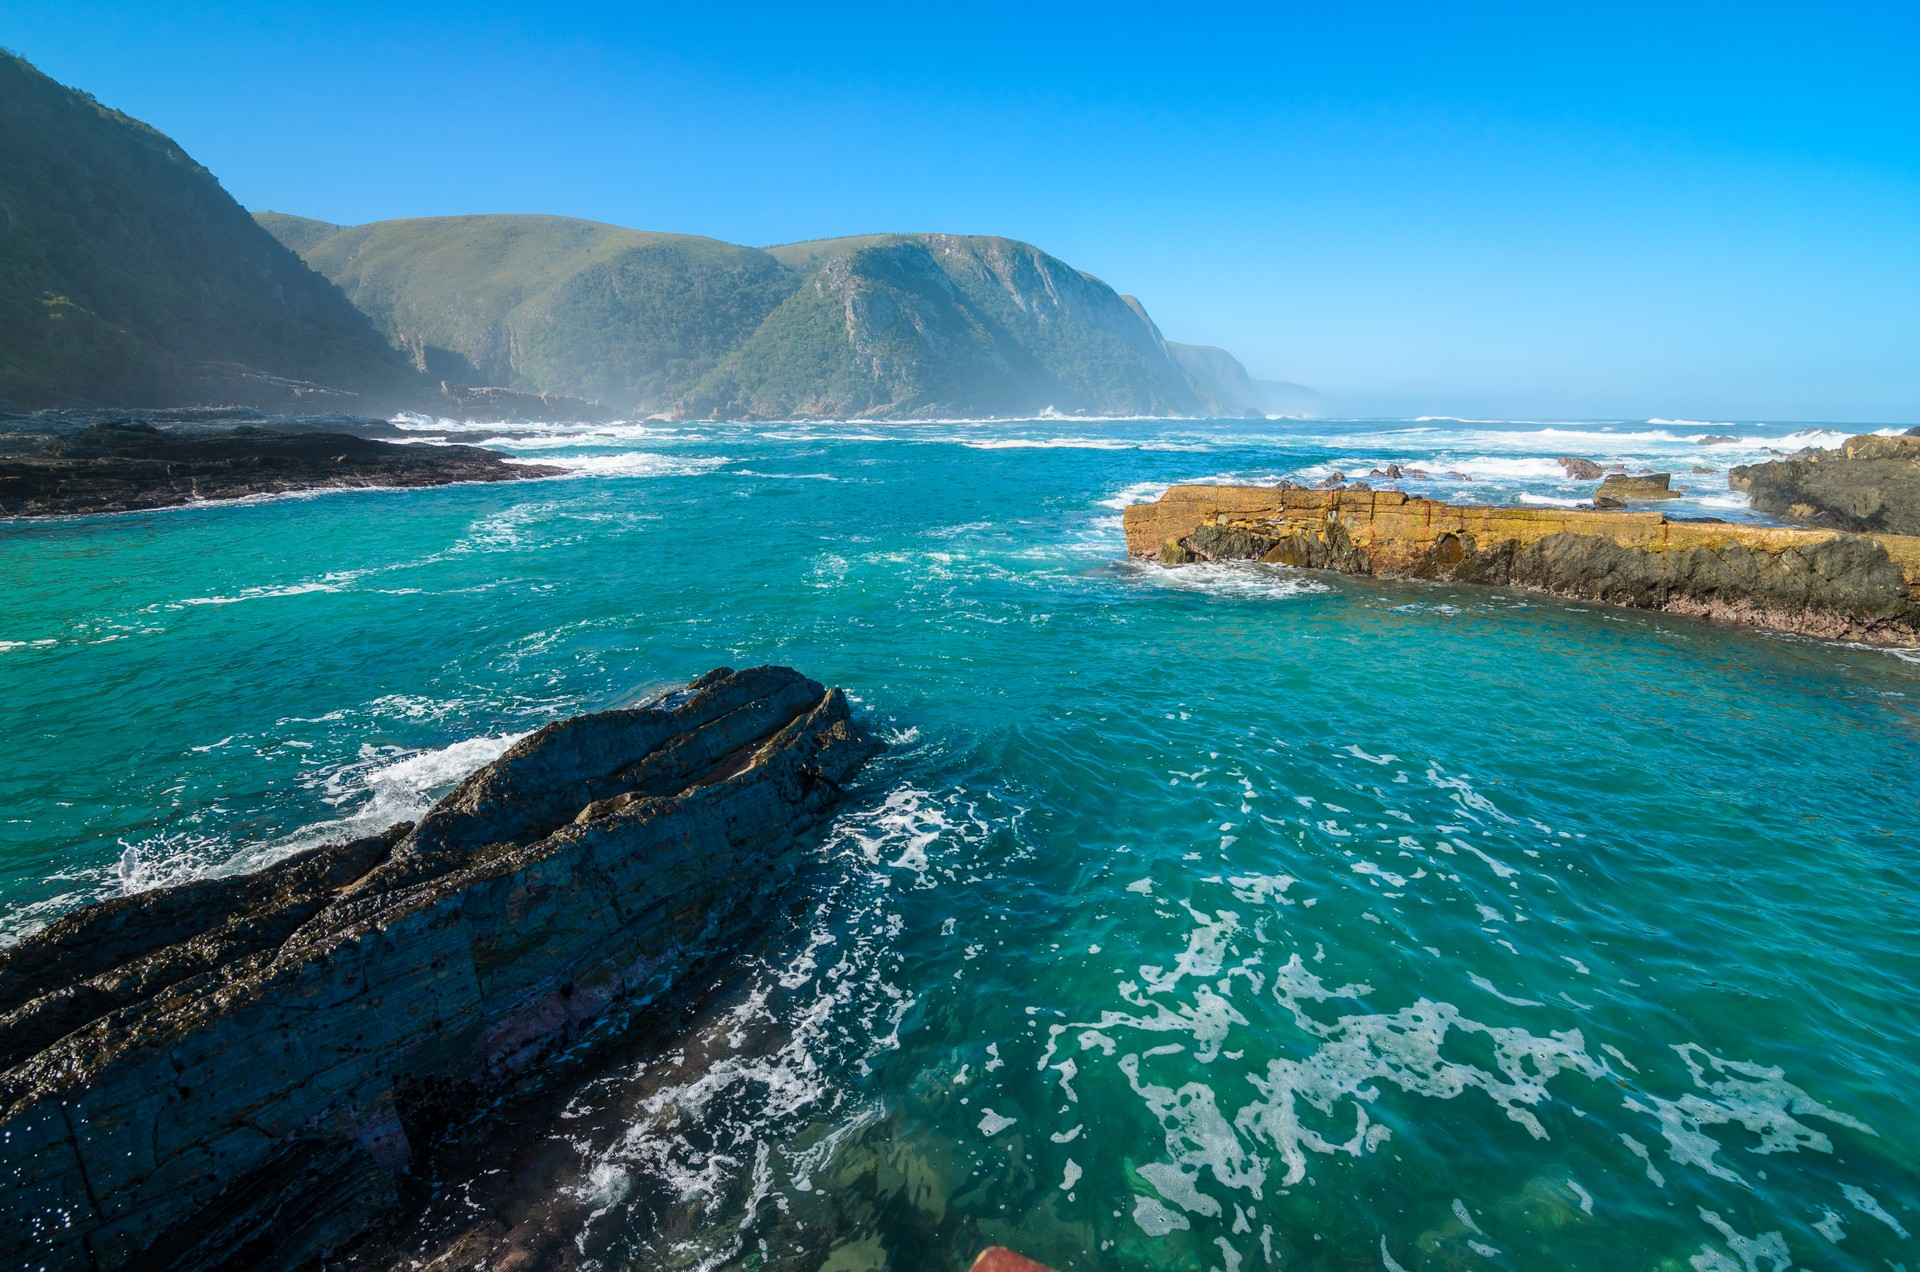 The coastline of Tsitsikamma National Park in South Africa